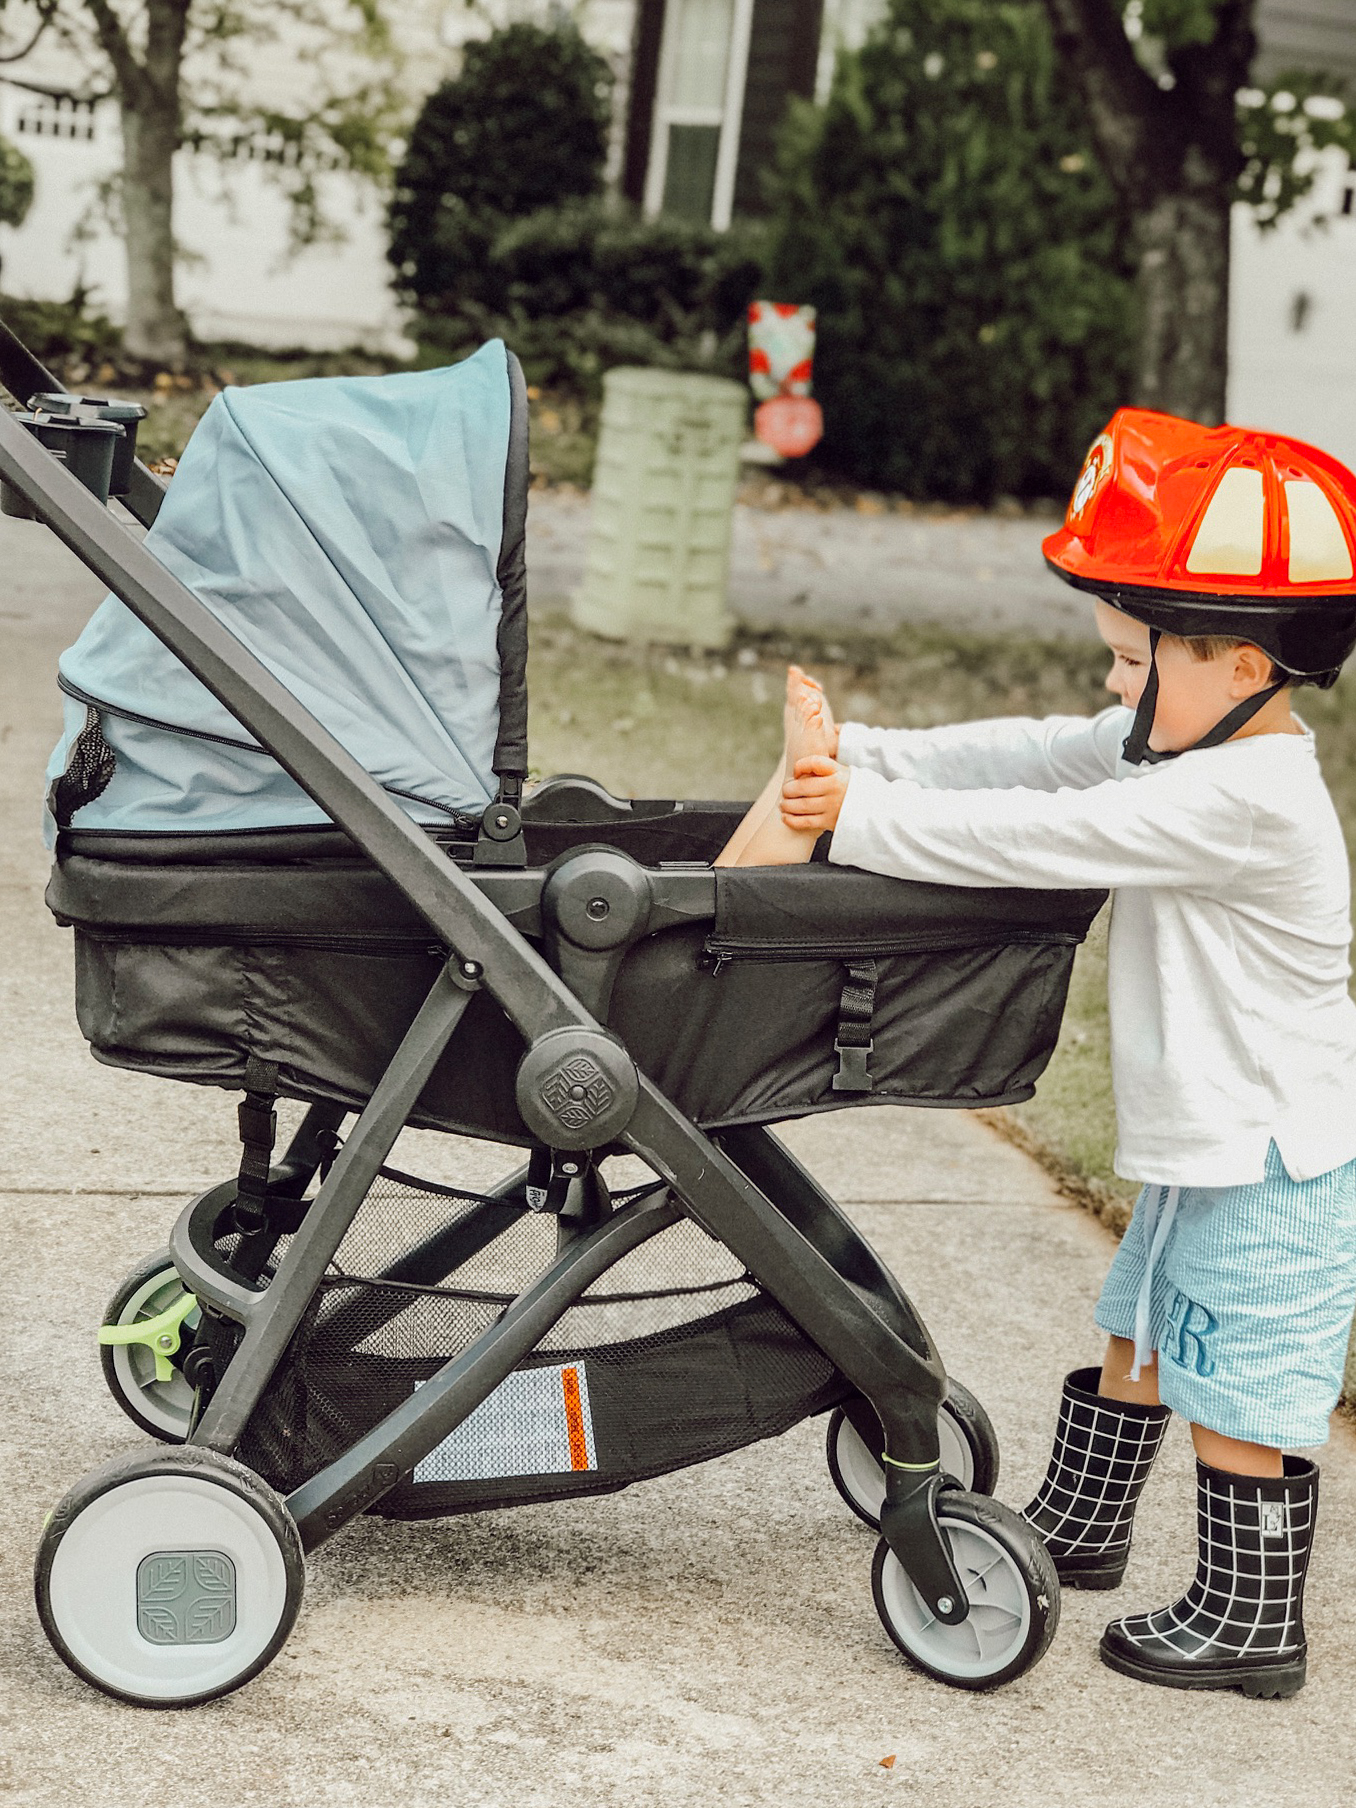 Safety 1st RIVA Stroller Review